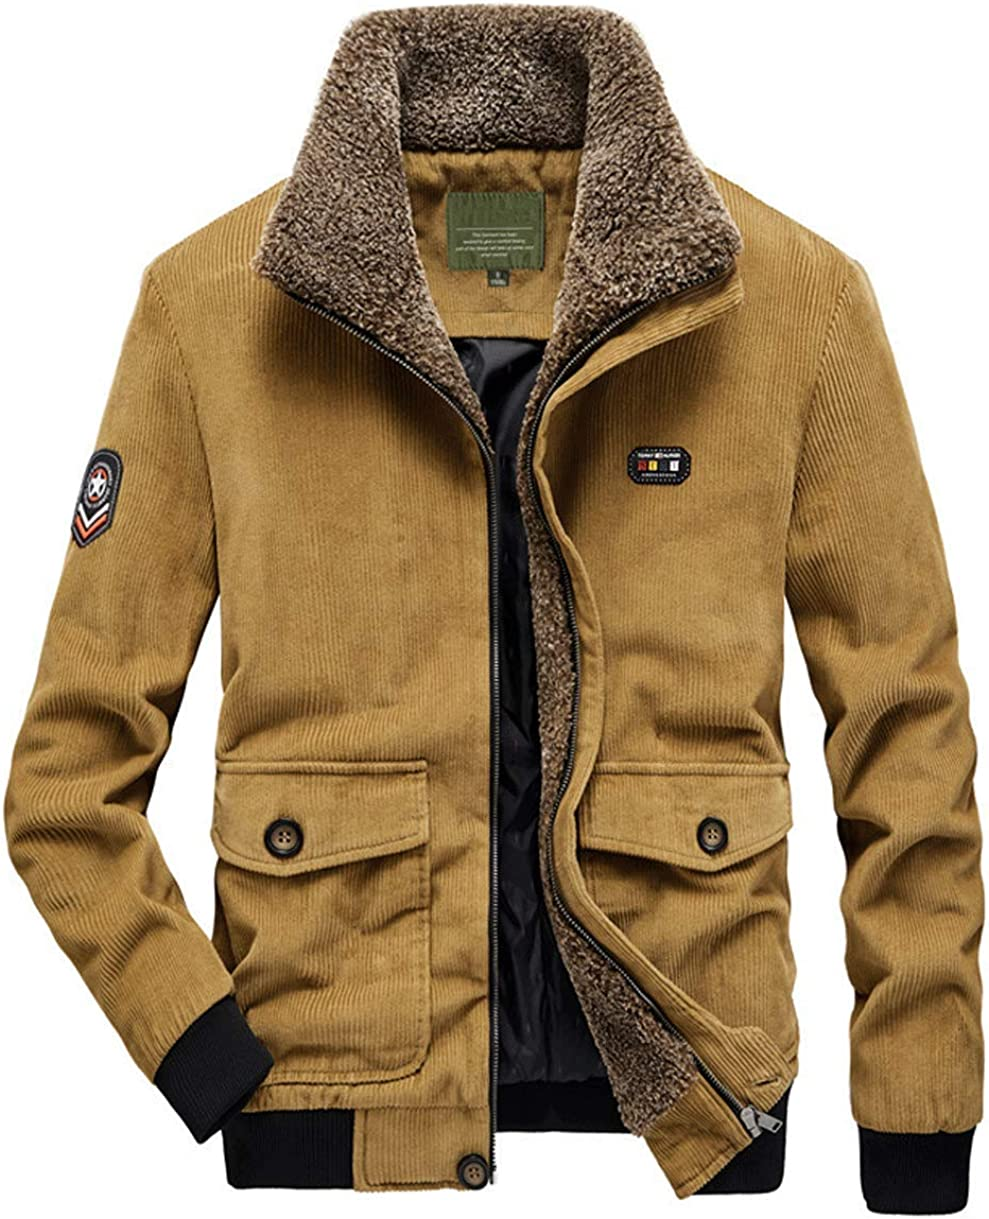 chouyatou Mens Casual Fleece Collar Thicken Quilted Lined Corduroy Bomber Jacket Coat